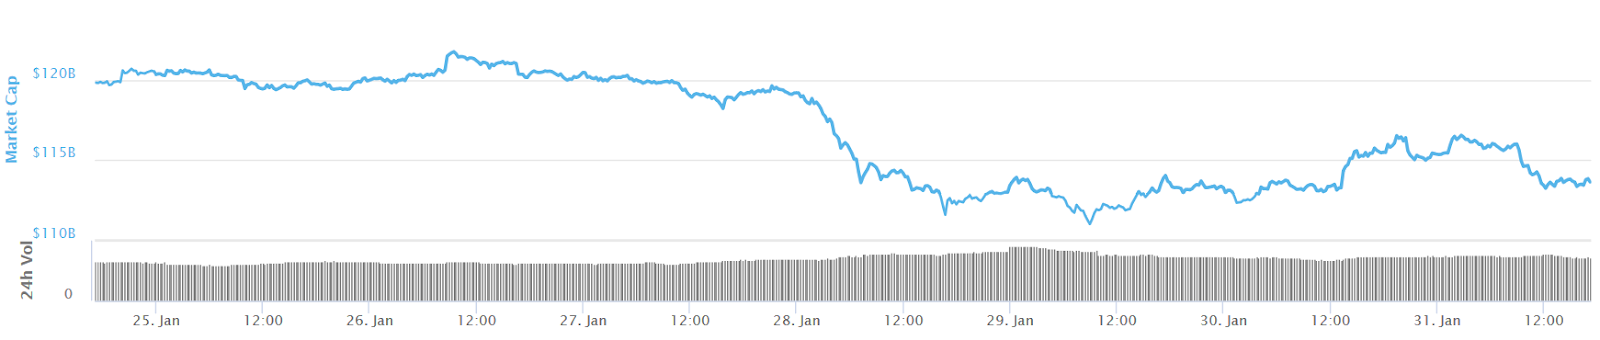 Total crypto market cap 7-day chart. Source: CoinMarketCap